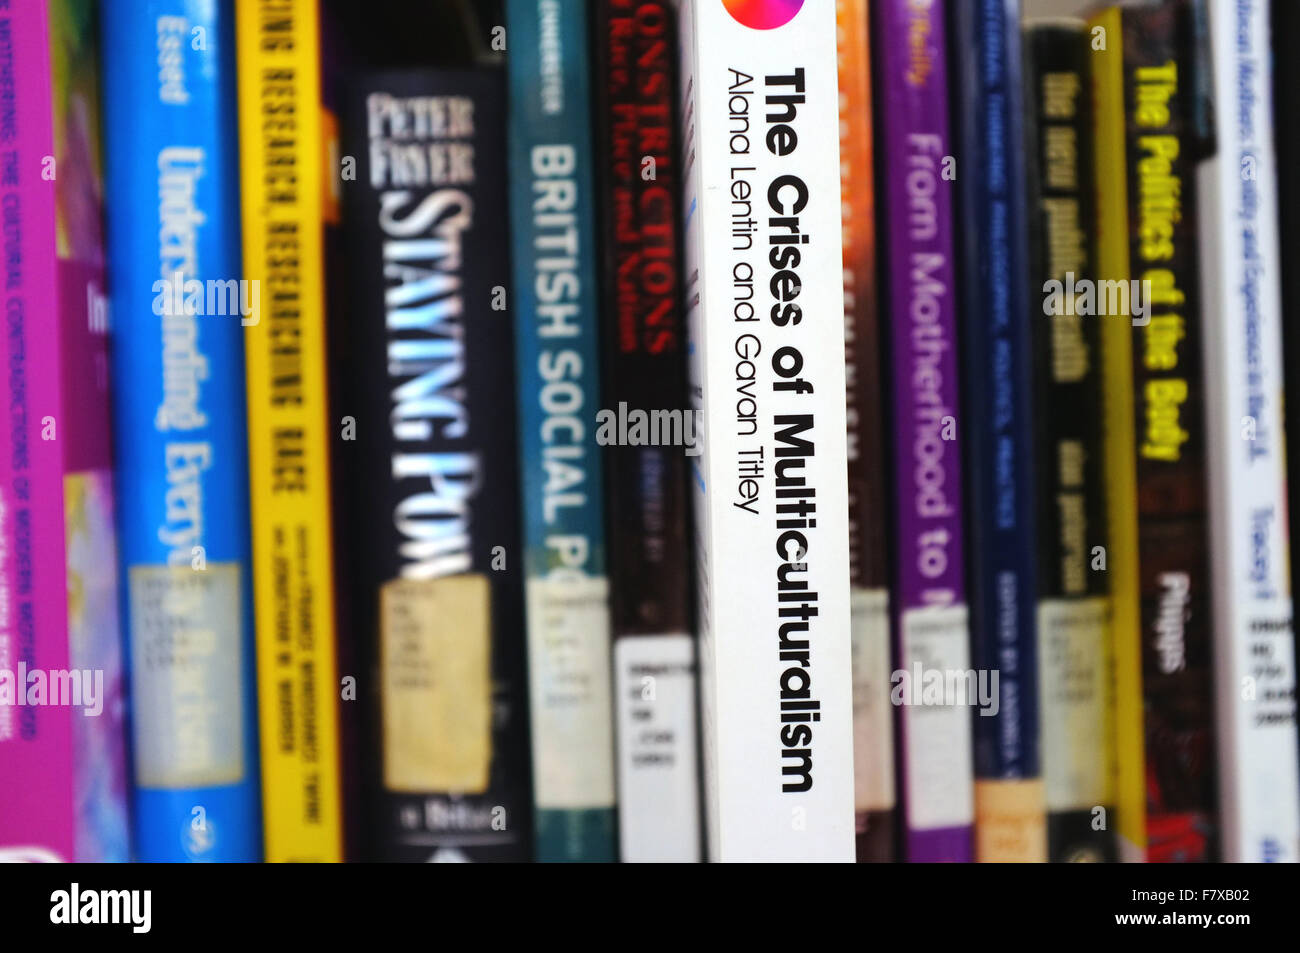 The spine of a Crises of Multiculturalism book pulled out on a bookshelf. - Stock Image